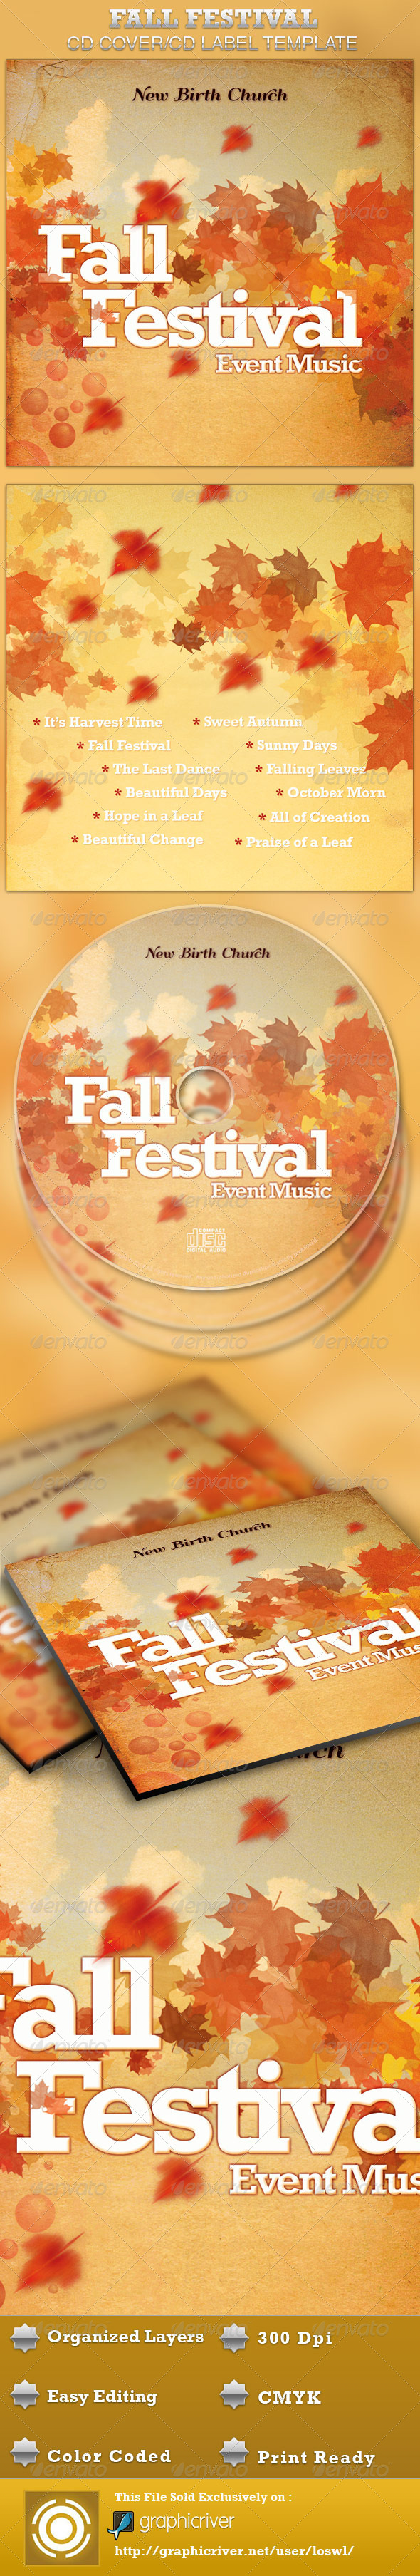 Fall Festival CD Artwork Template - CD & DVD artwork Print Templates